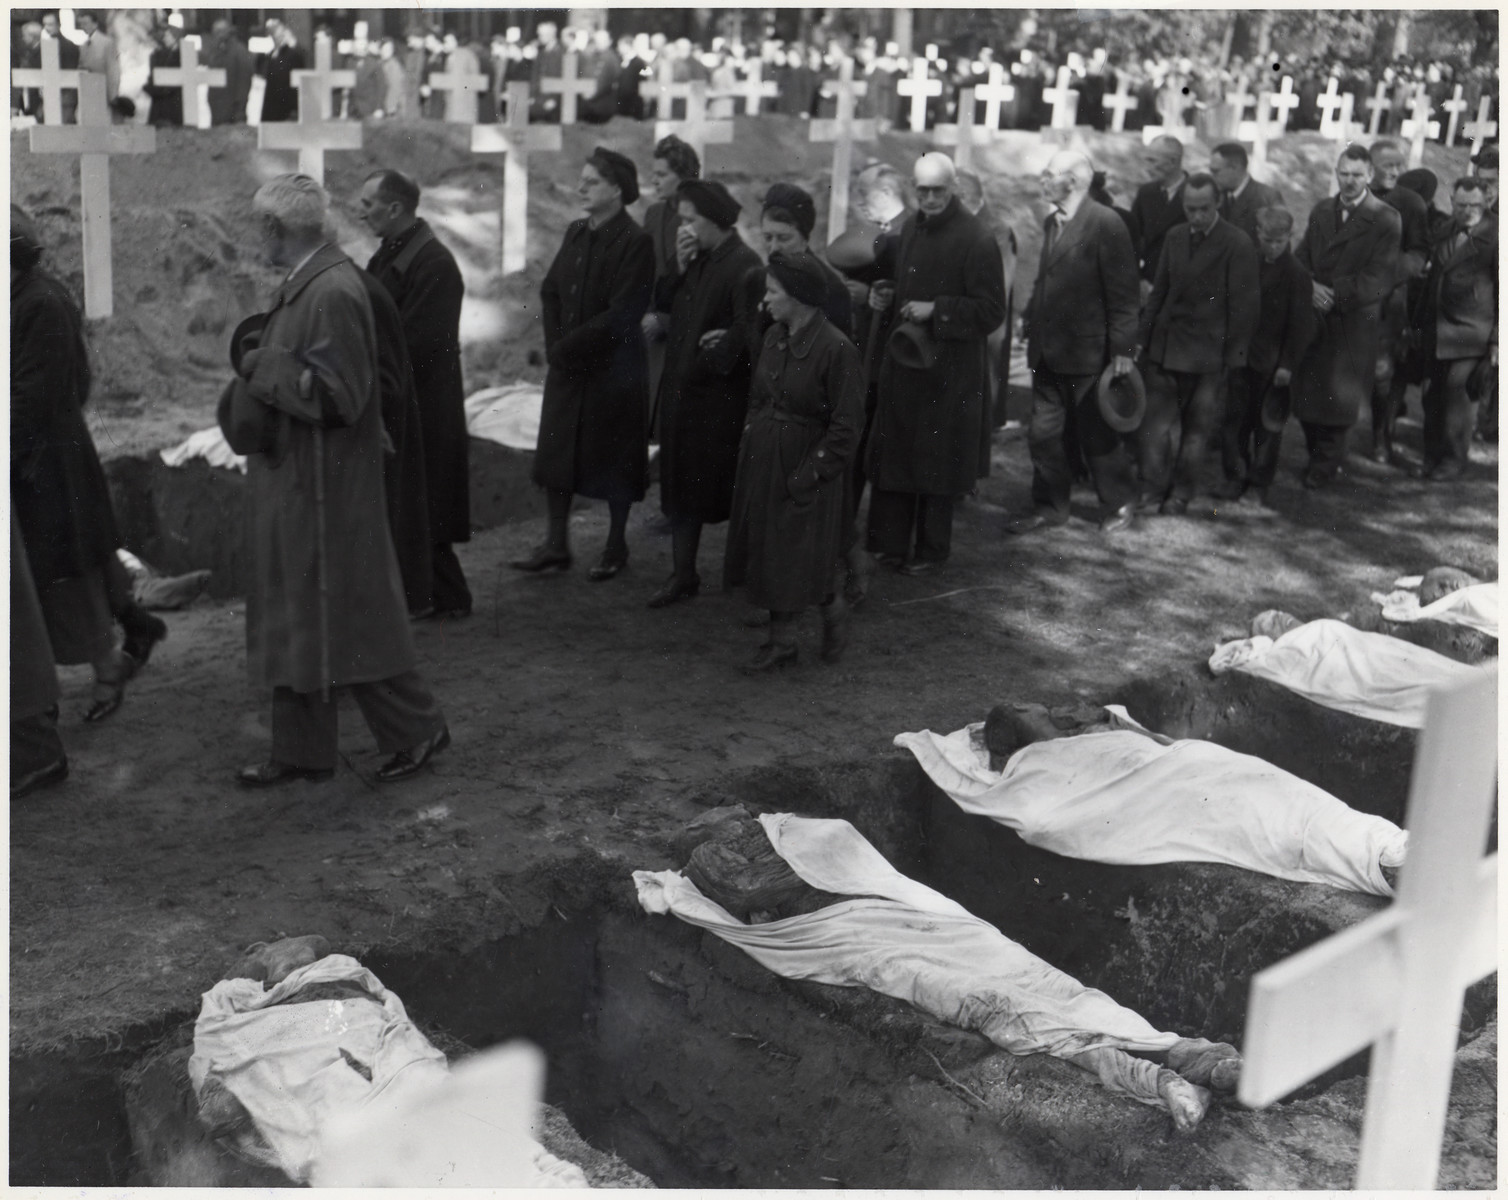 German civilians are forced to walk past the victims of the Woebbelin atrocity prior to their burial.